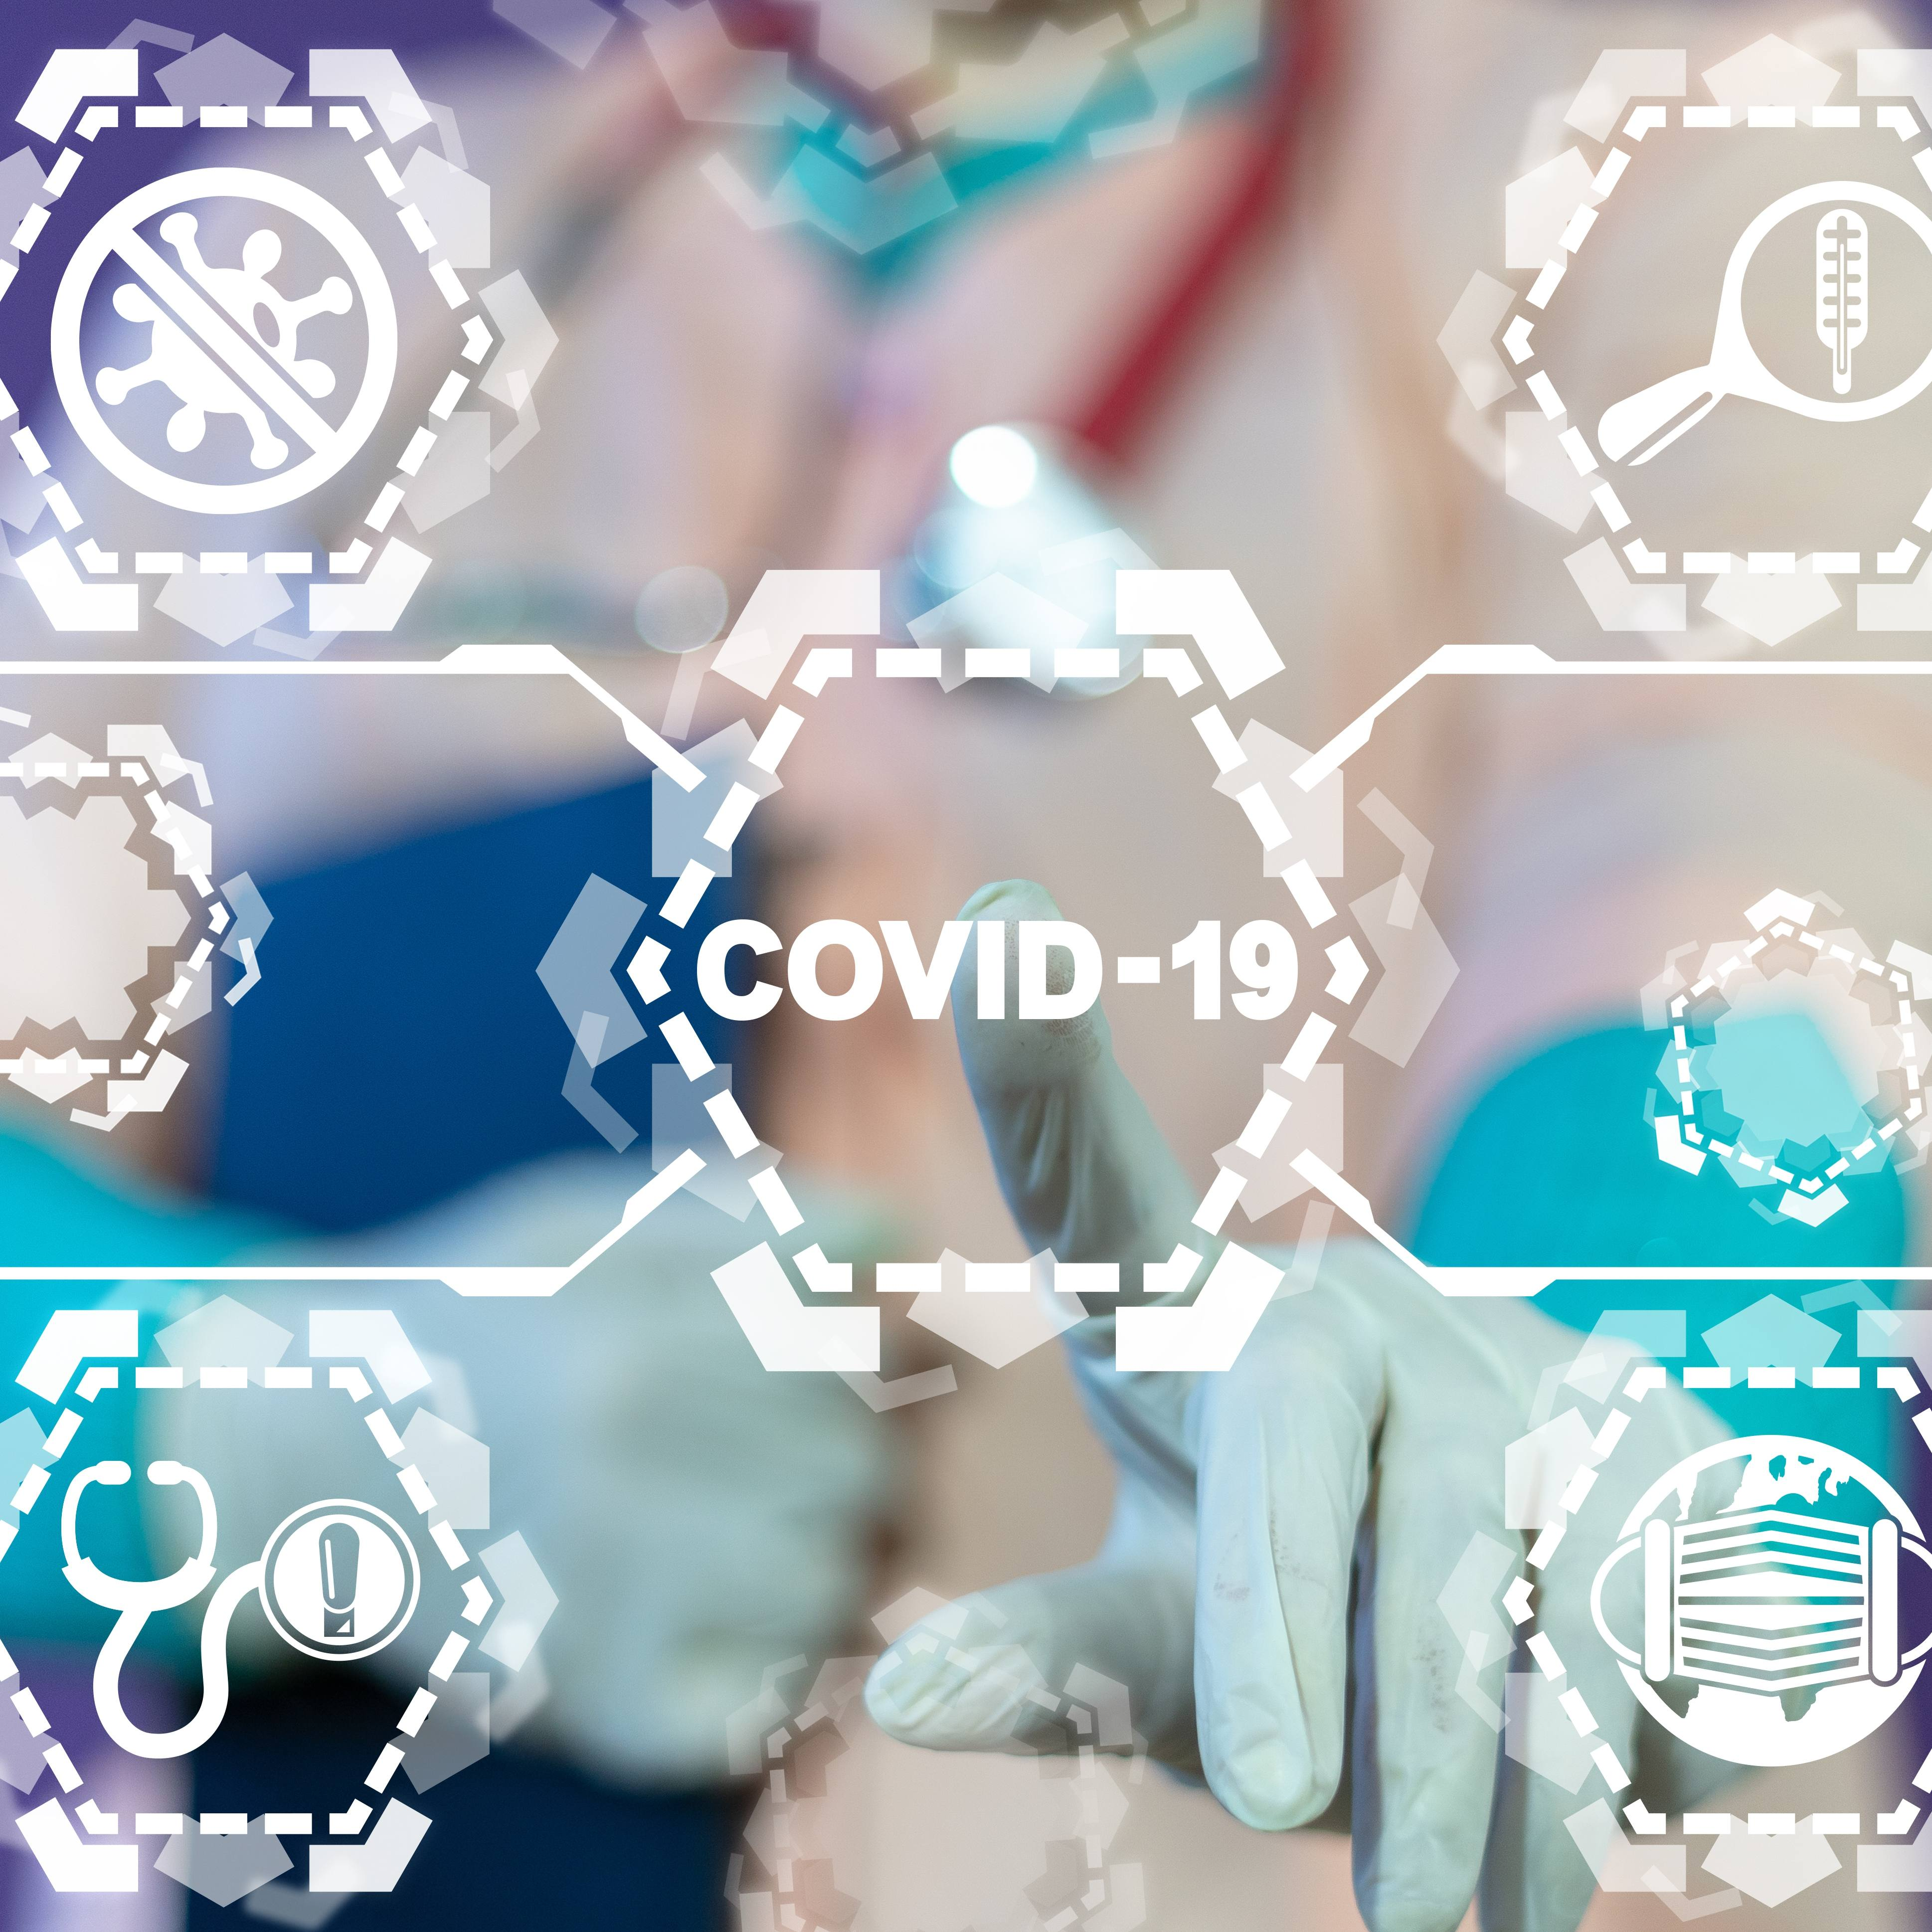 a word graphic with medical icons and COVID-19 written in the center and a hand with a medical glove pointing to the word